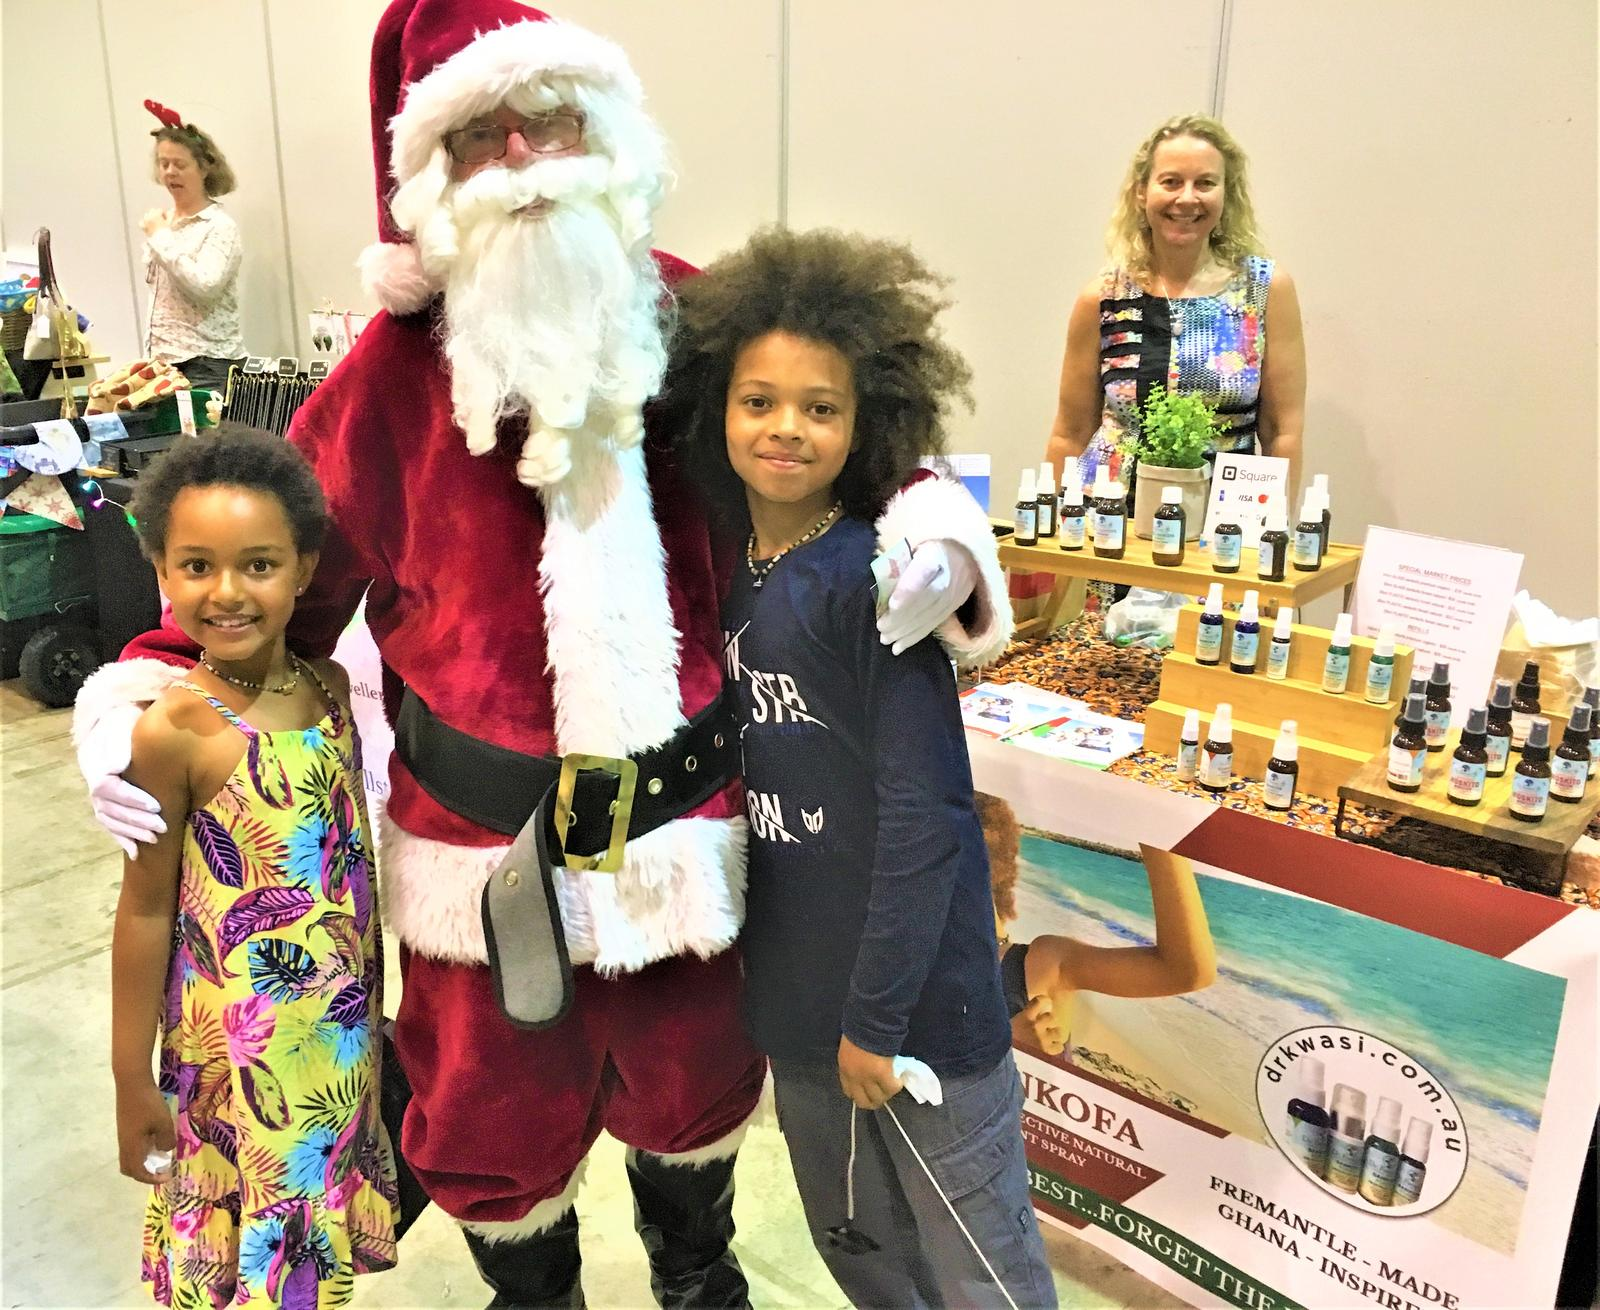 With Santa @ PMM Perth Convention Centre